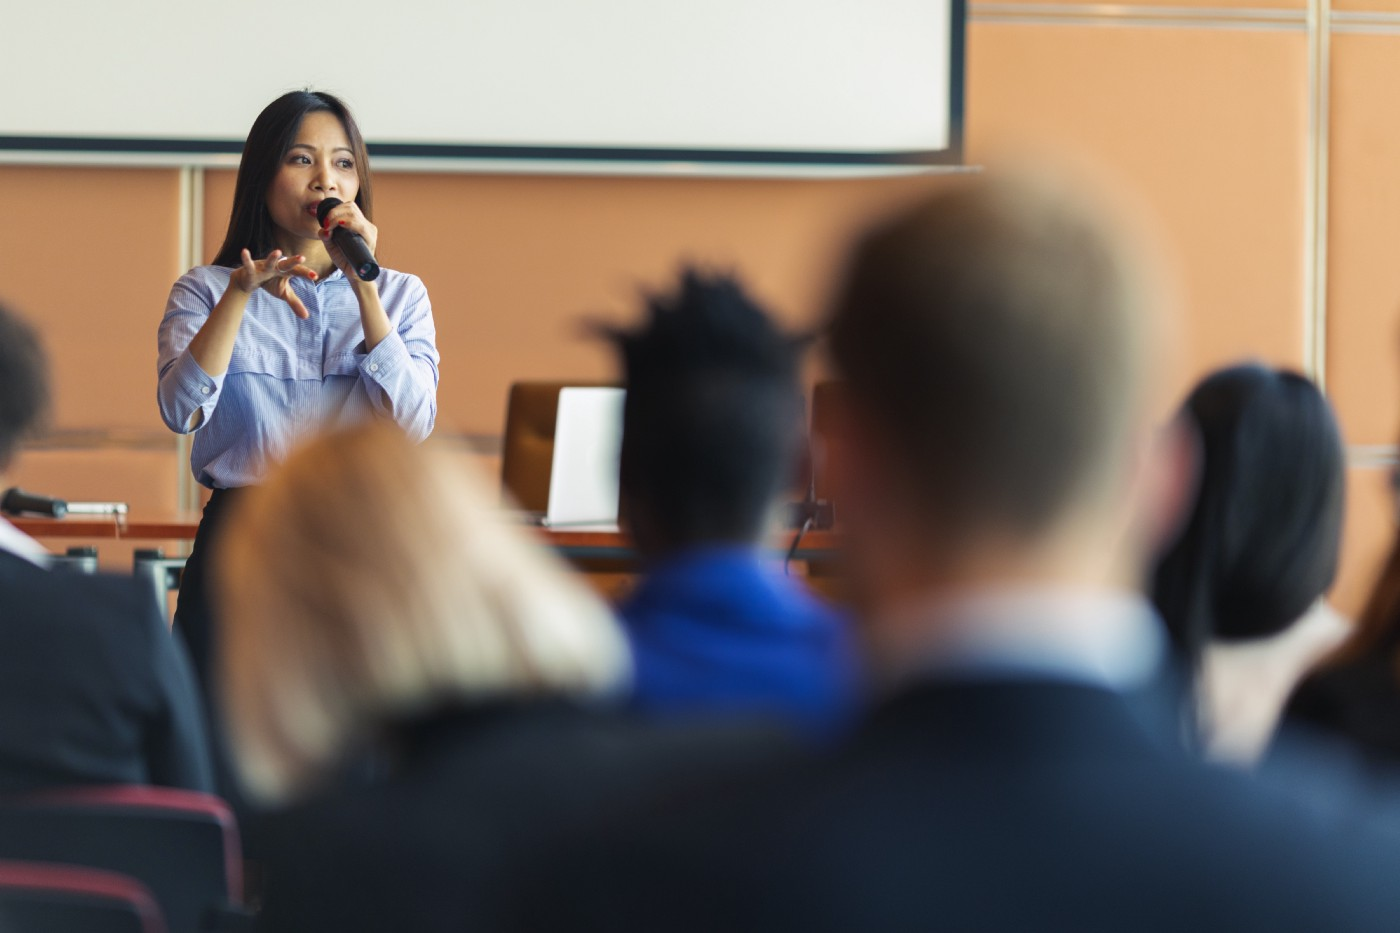 An Asian woman presenter interacting with the audience at a business presentation in the board room.